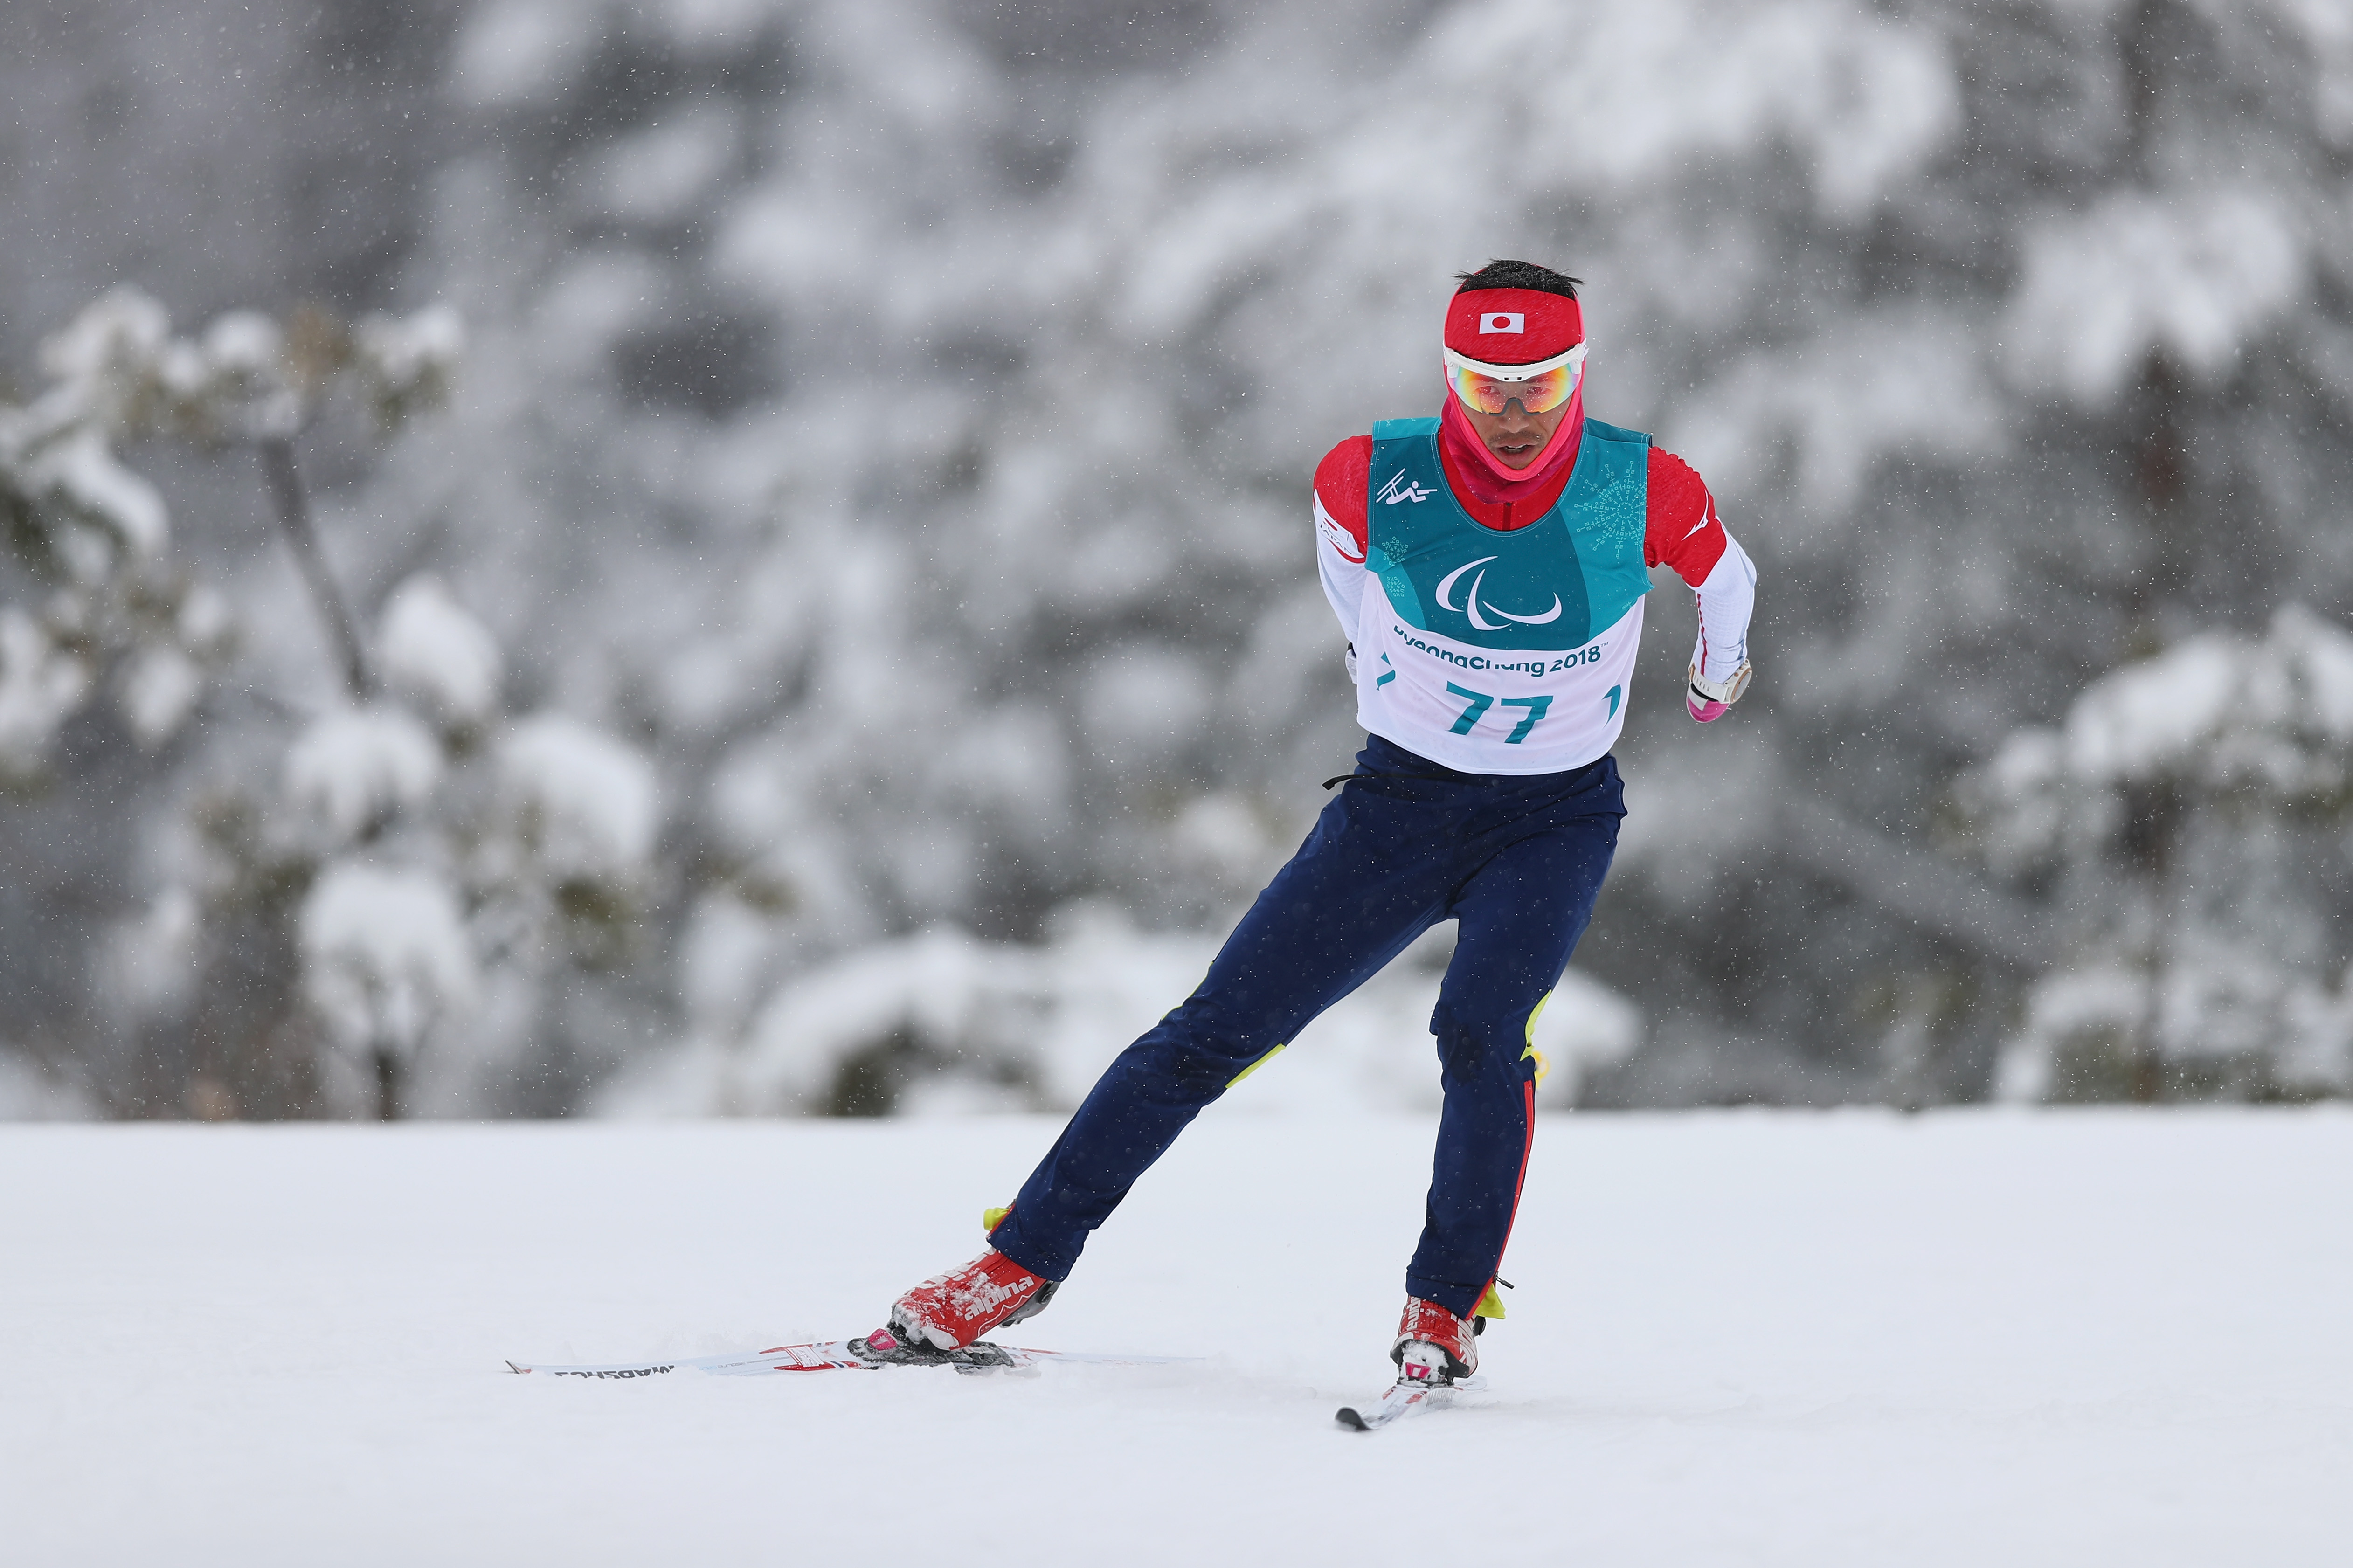 Keiichi Sato of Japan in action during a Biathlon training session ahead of the PyeongChang 2018 Paralympic Games on March 8, 2018 in PyeongChang, South Korea.